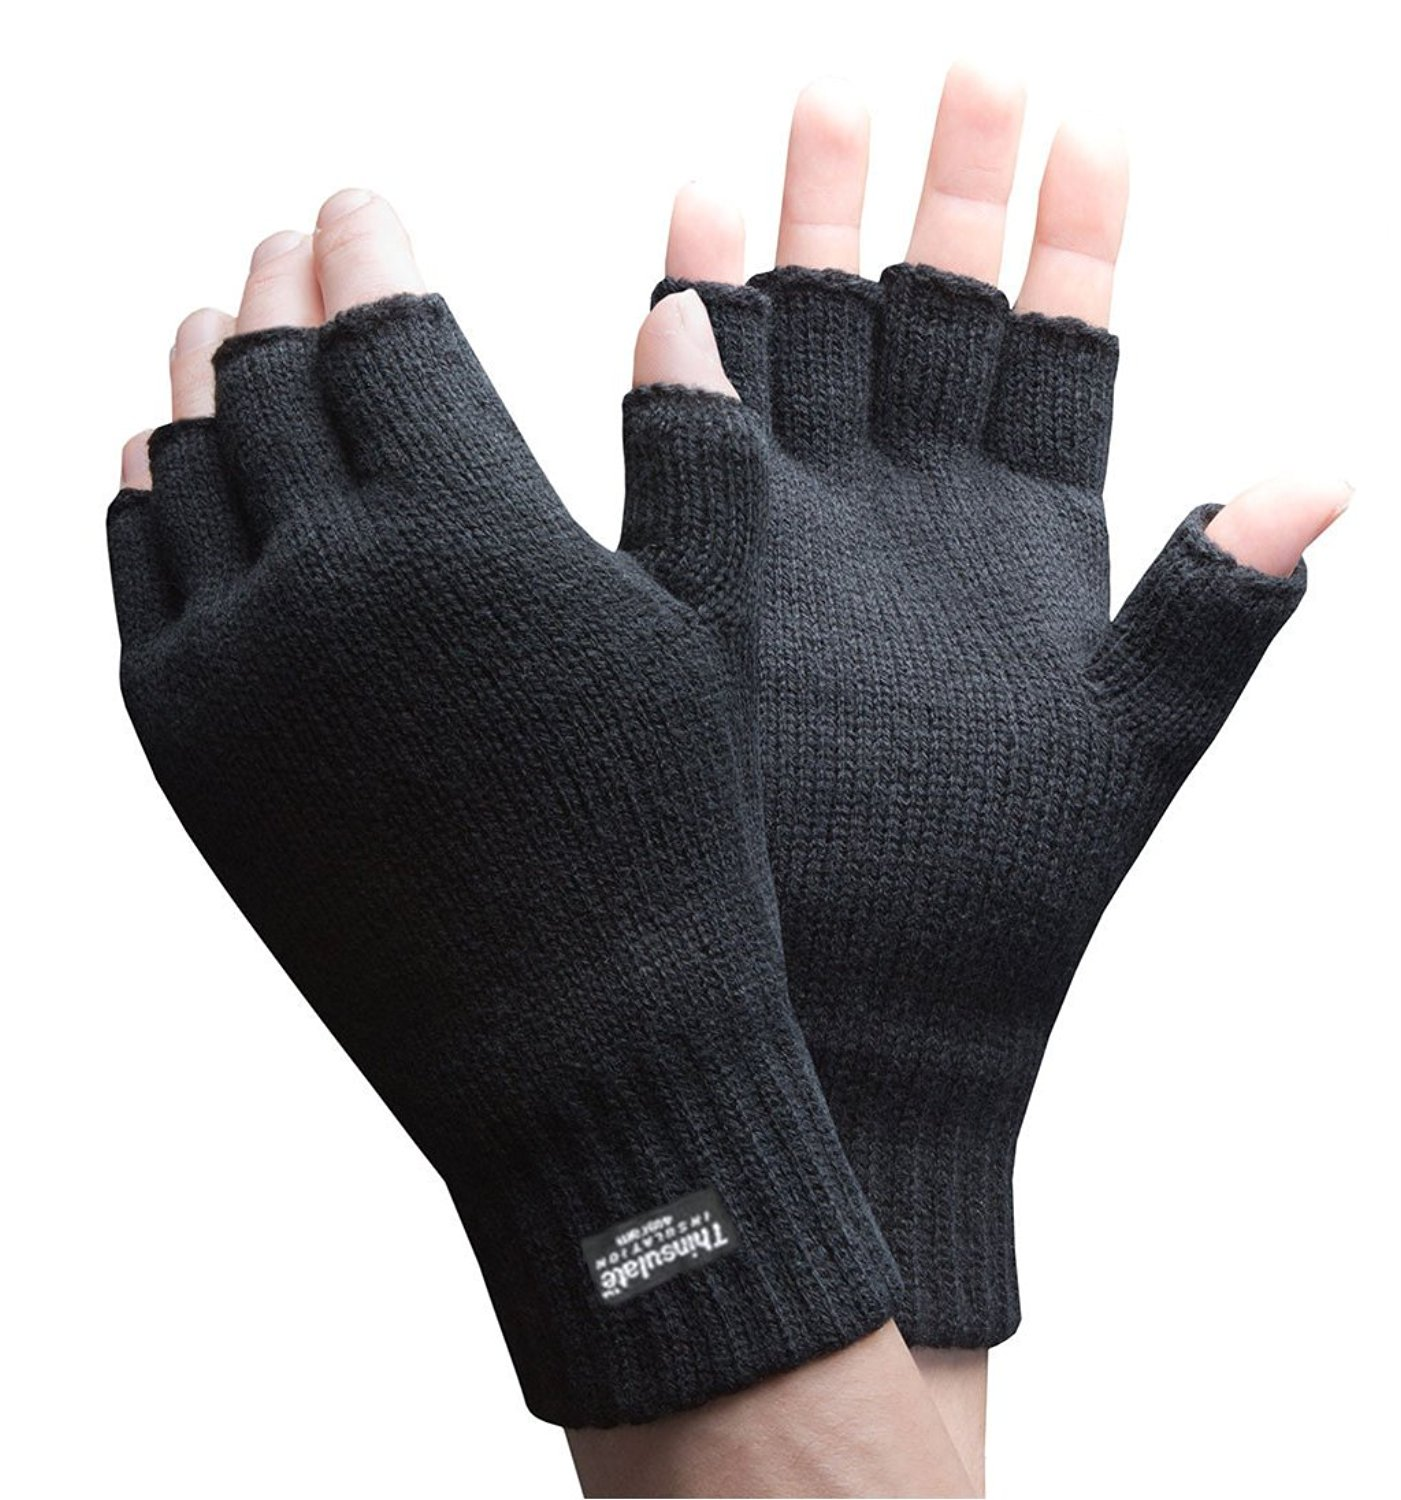 What are called fingerless gloves 82